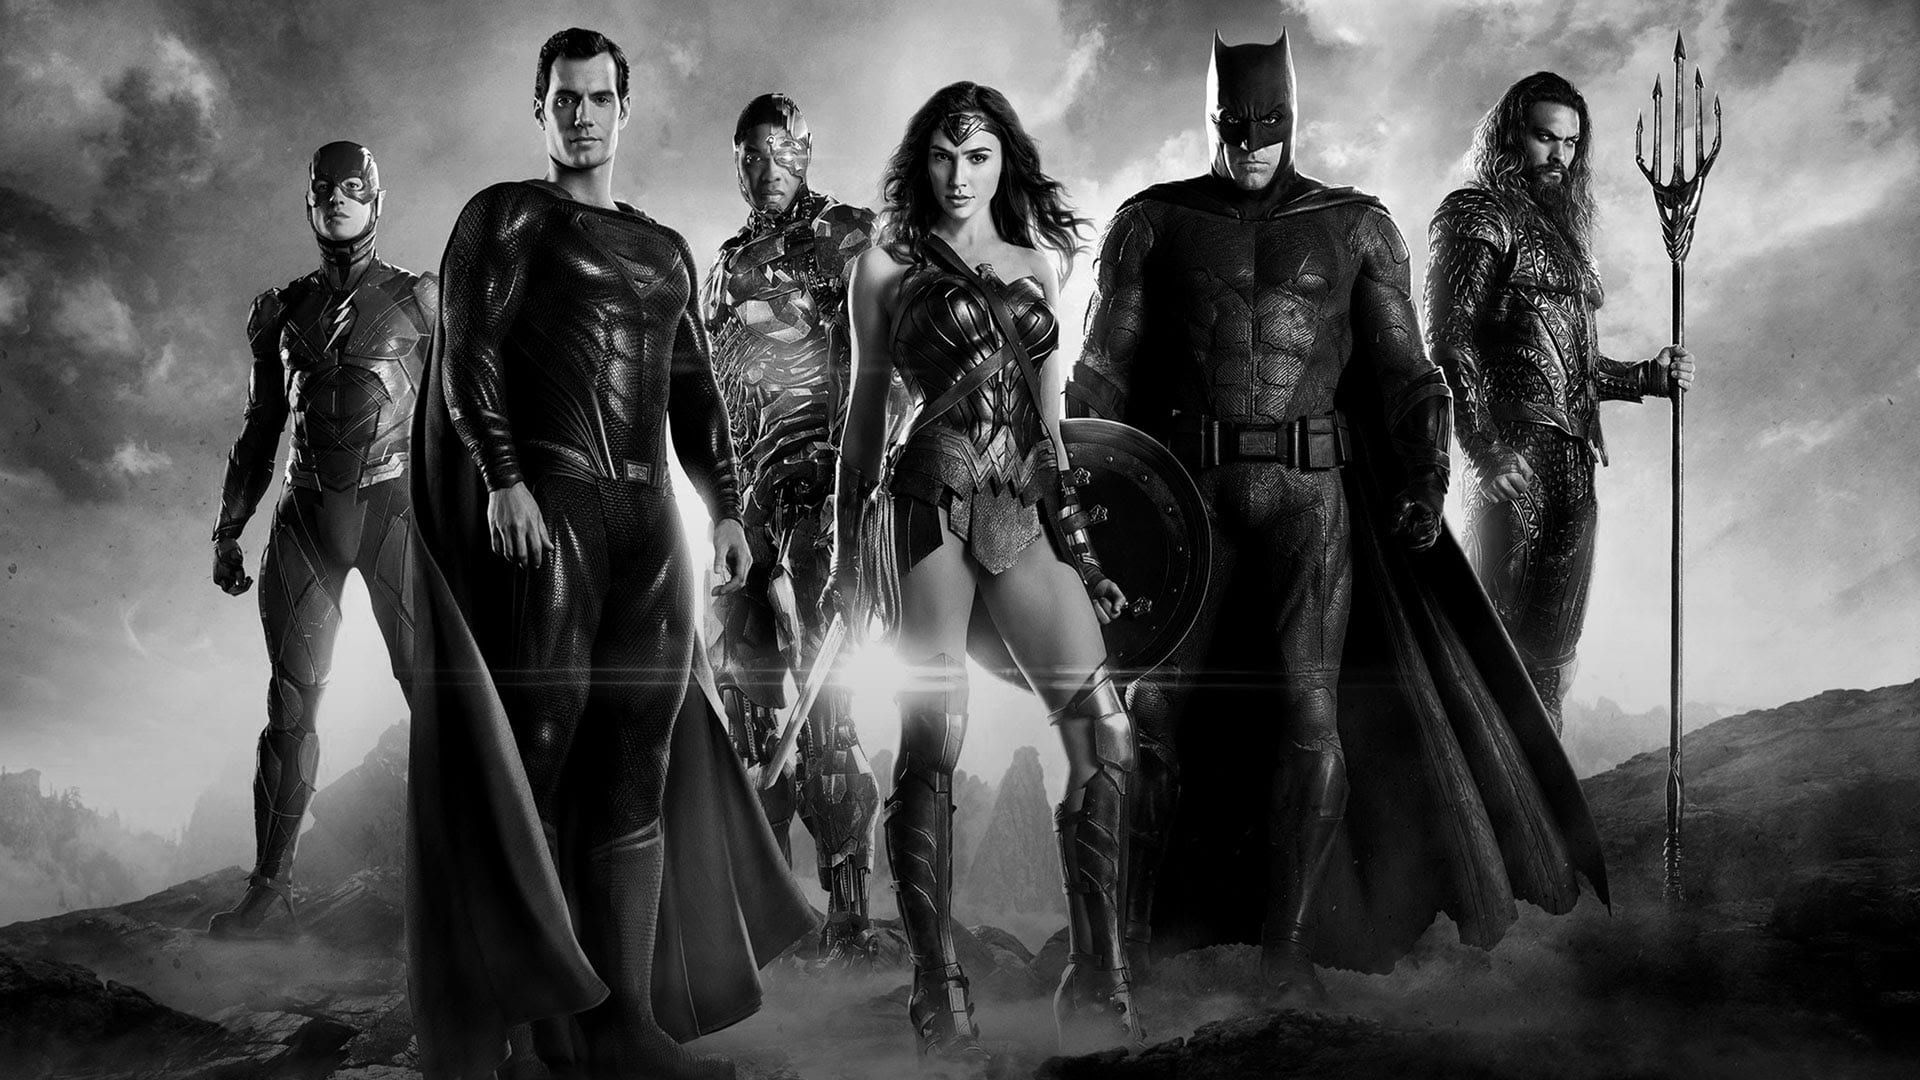 ZACK SNYDER'S JUSTICE LEAGUE Producer Deborah Snyder Explains Challenges Of Finishing The Movie During COVID